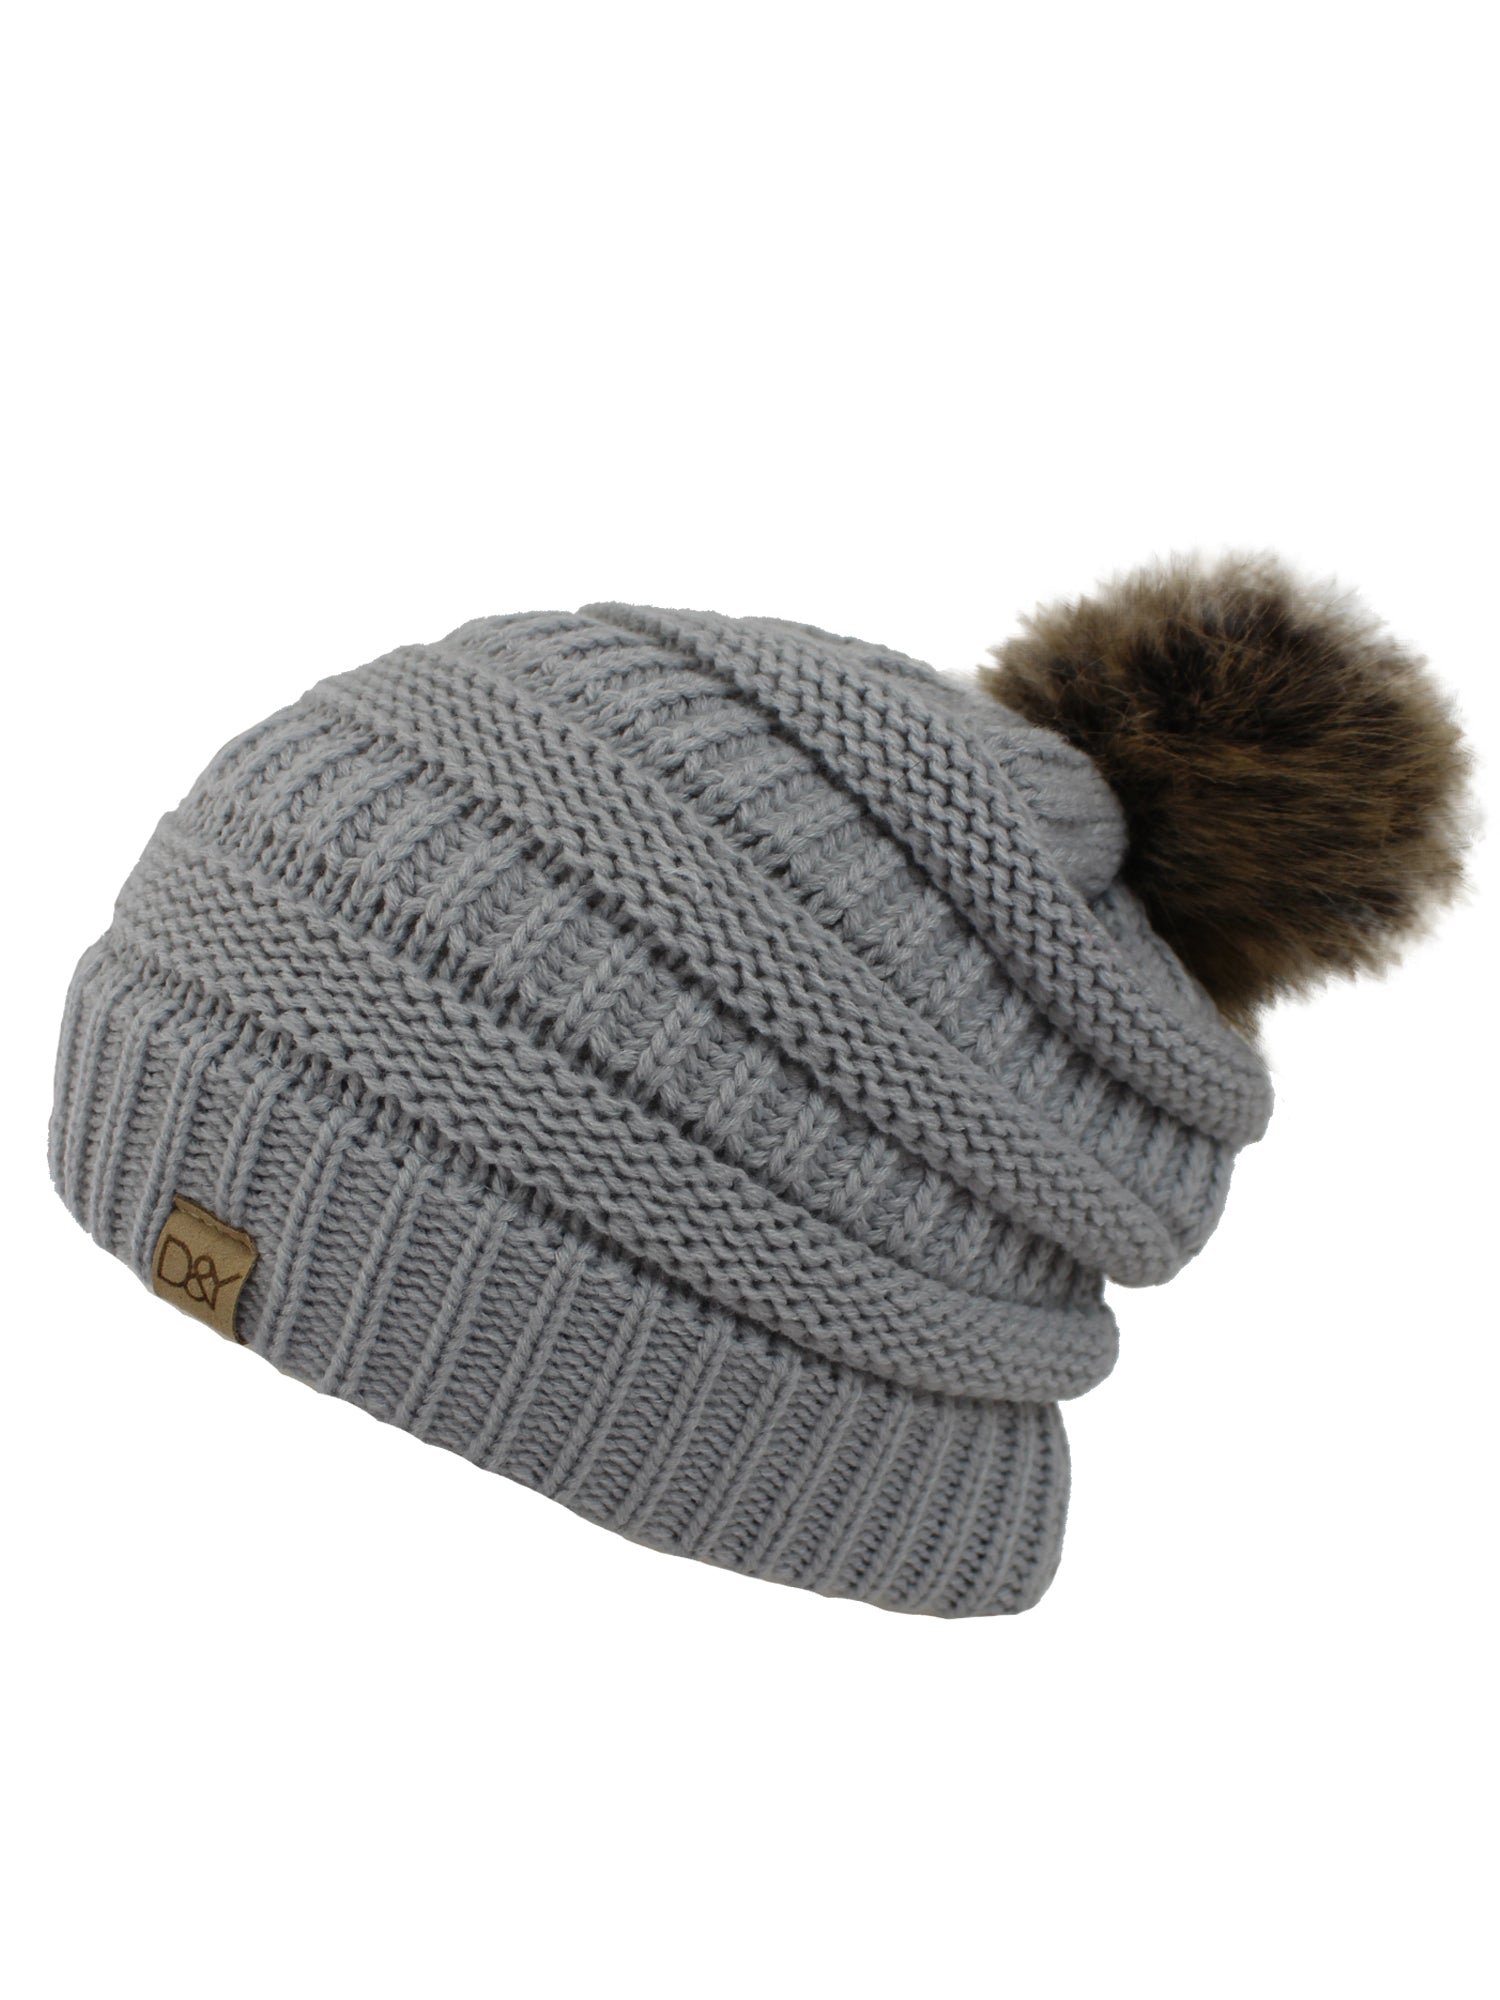 Light Gray Halo Ribbed Slouch Hat With Fur Pom Pom